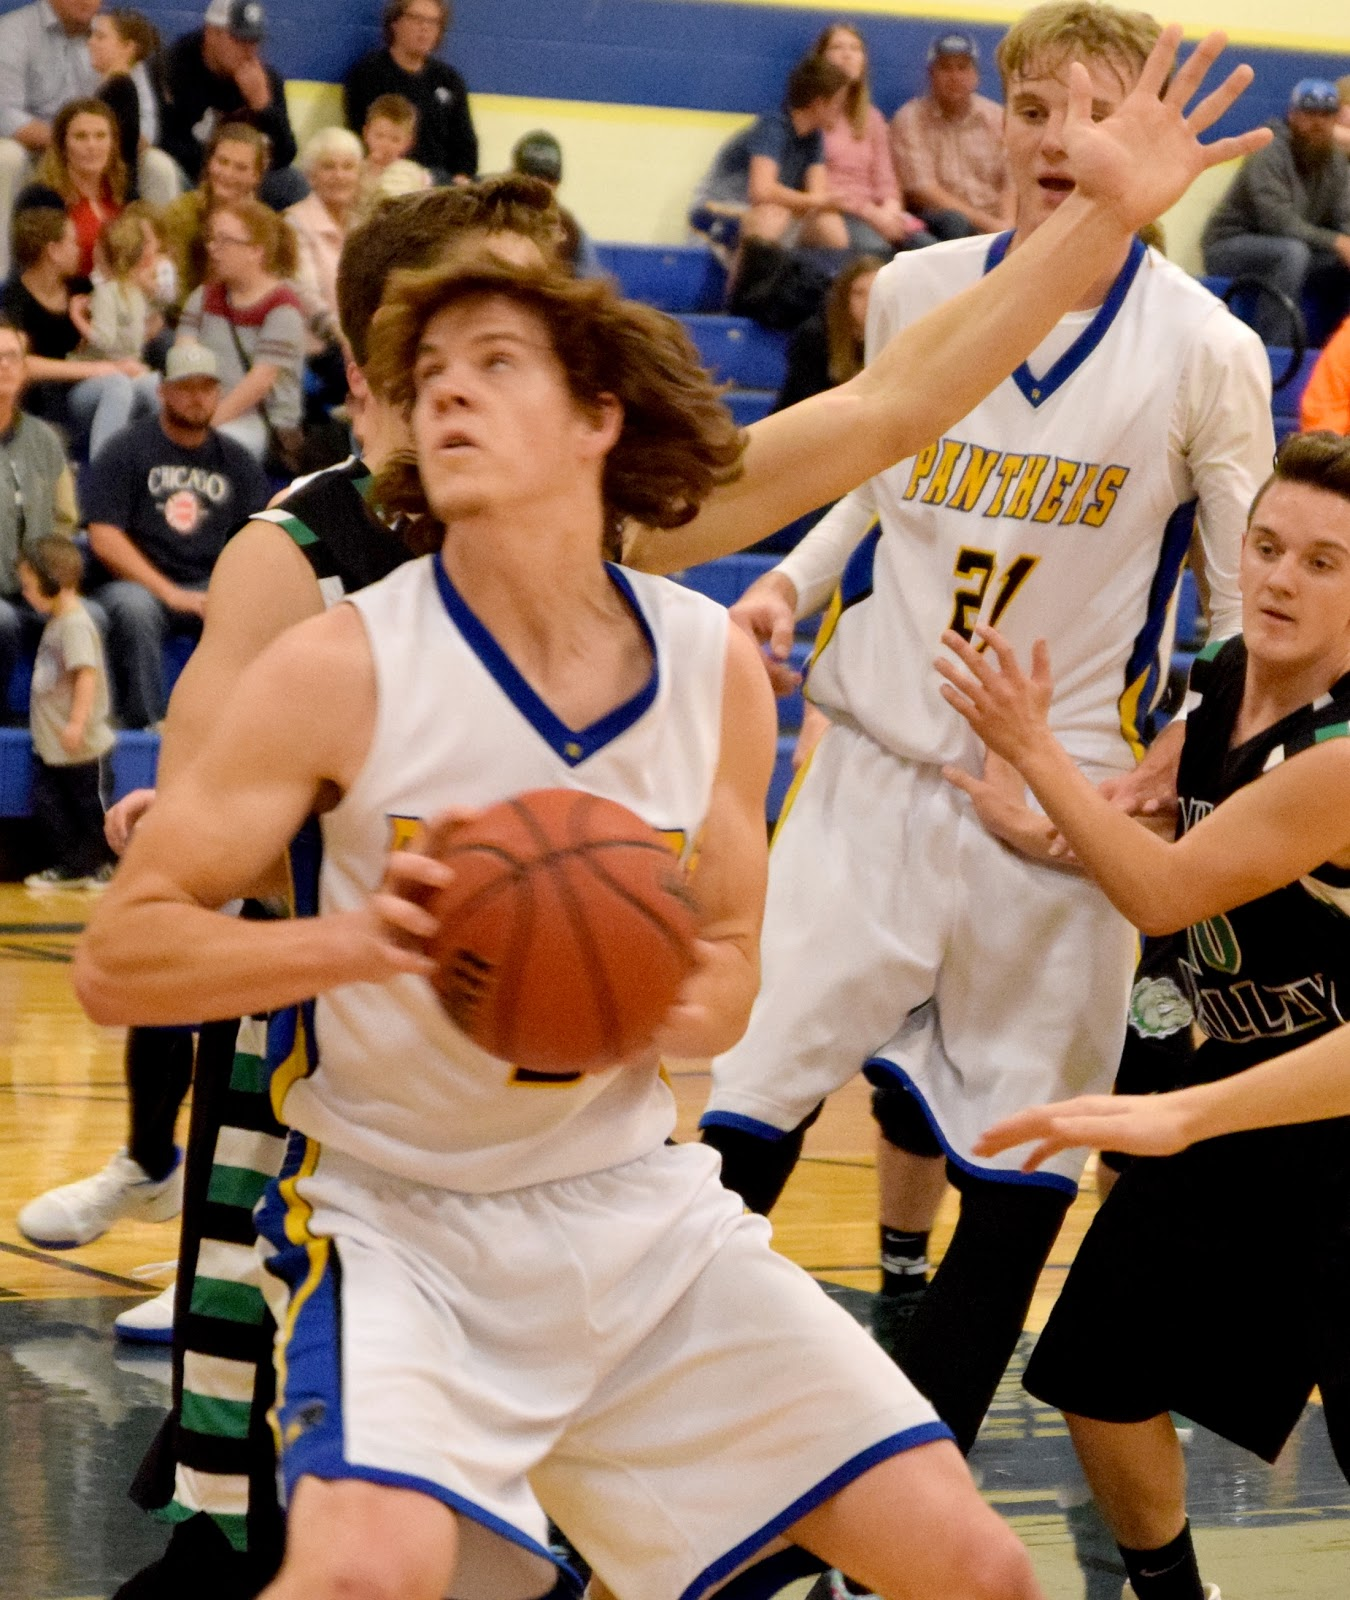 Highbe's 28 Leads Panther Boys